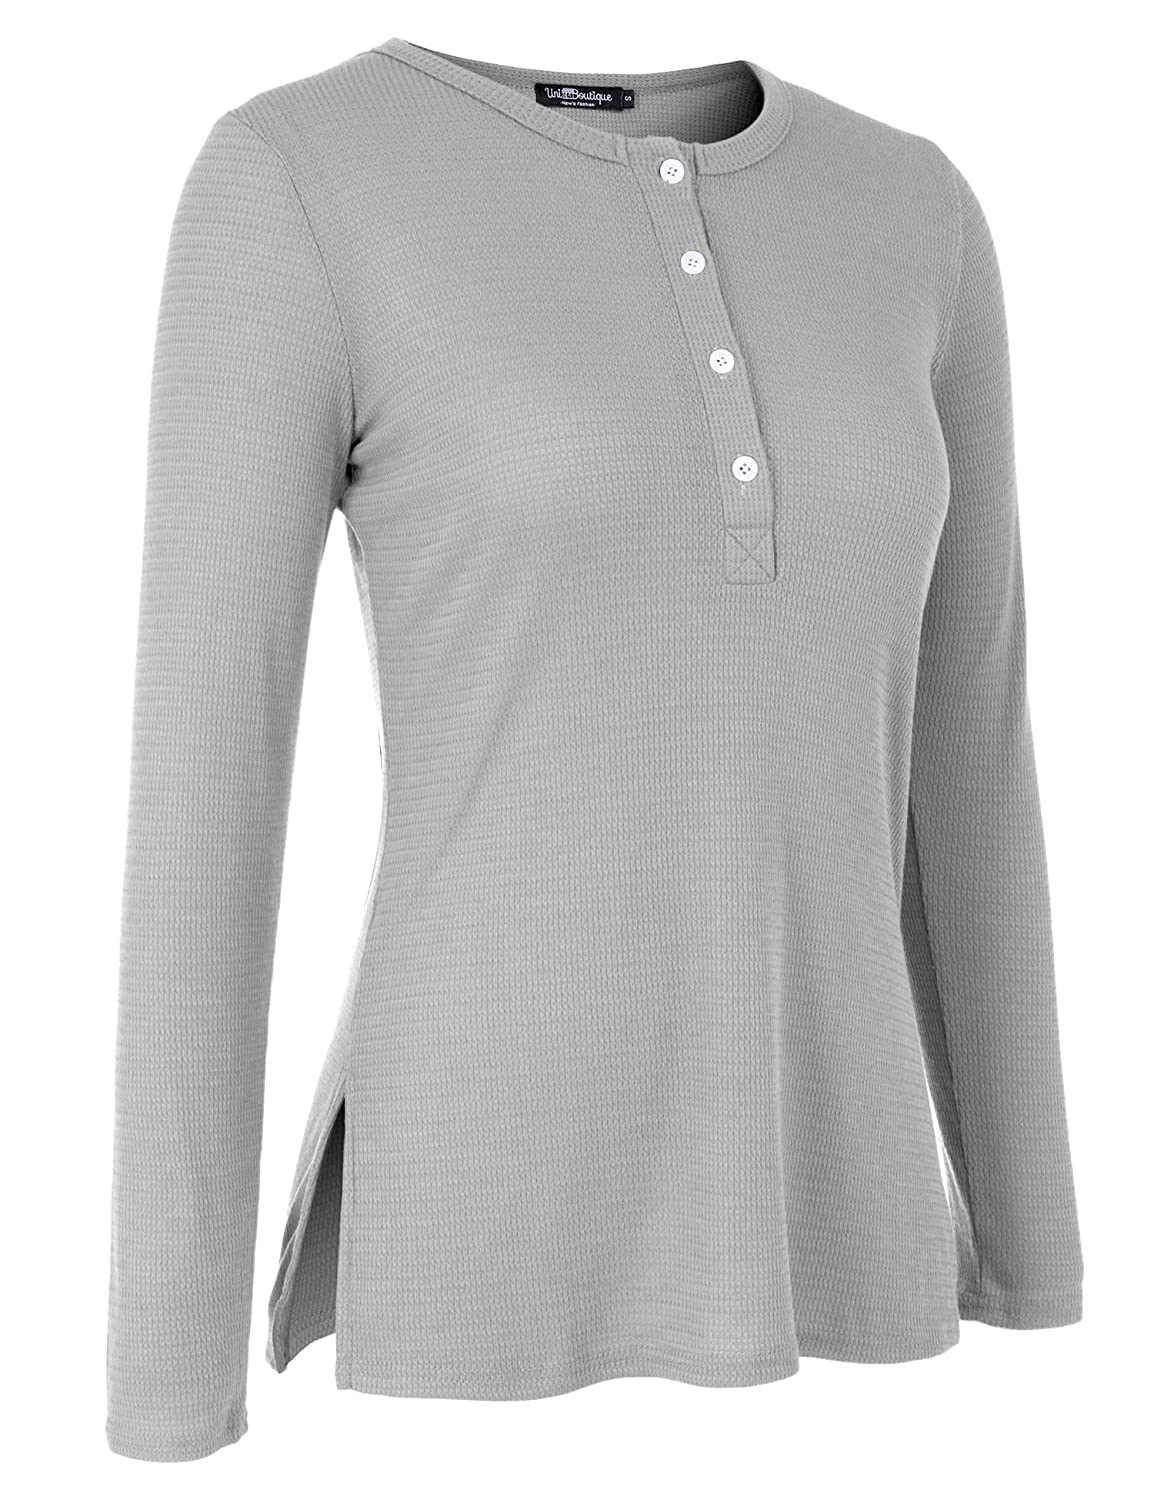 fac2c0b6 Uniboutique Womens Long Sleeve Henley Shirt Button Down Lightweight Knit Tunic  Blouse Side Slits Tops at Amazon Women's Clothing store: